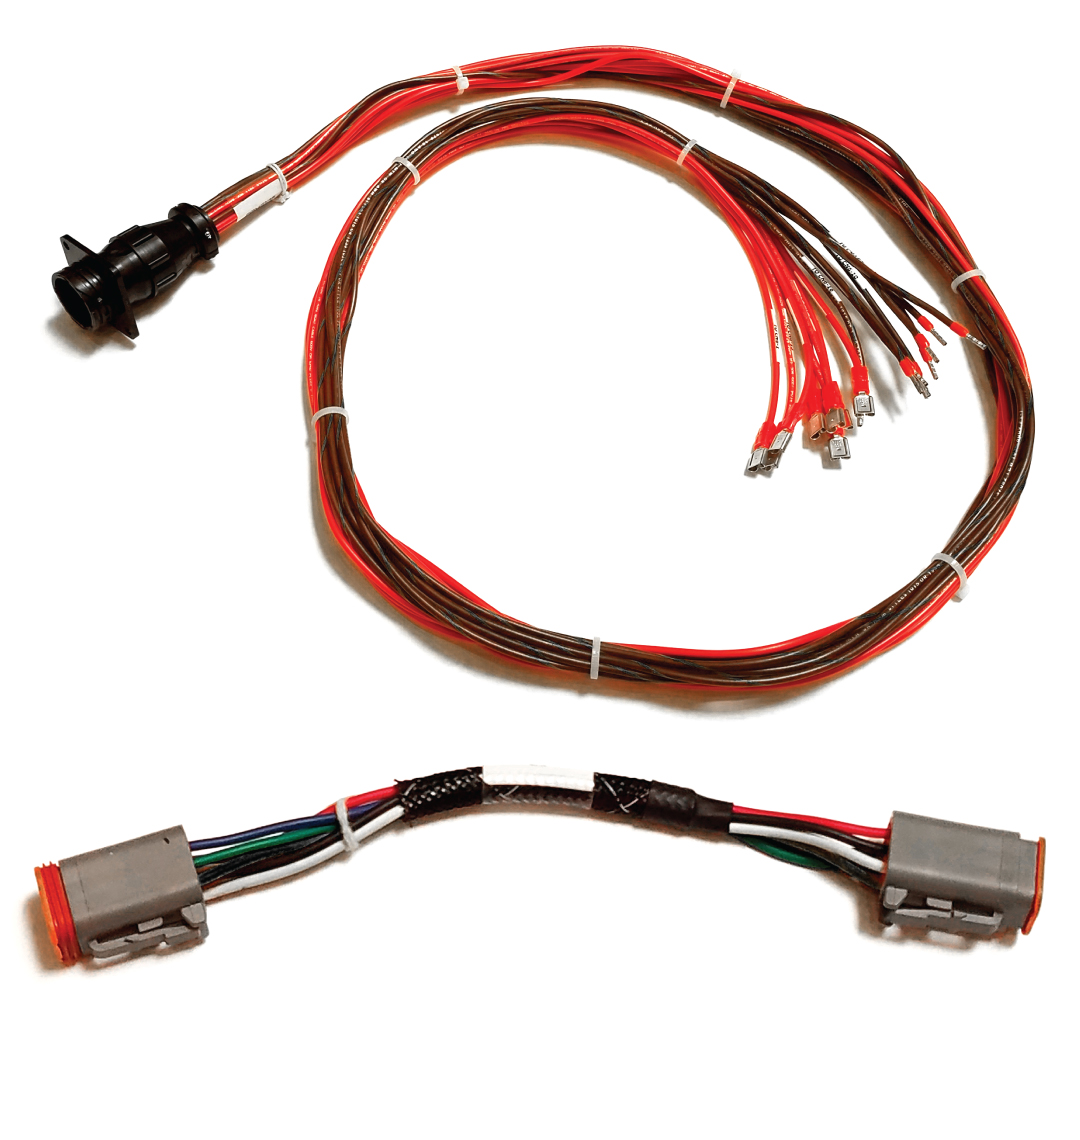 Cable Harness Manufacturing Nep Electronics Custom Built Wiring Wire Harnesses